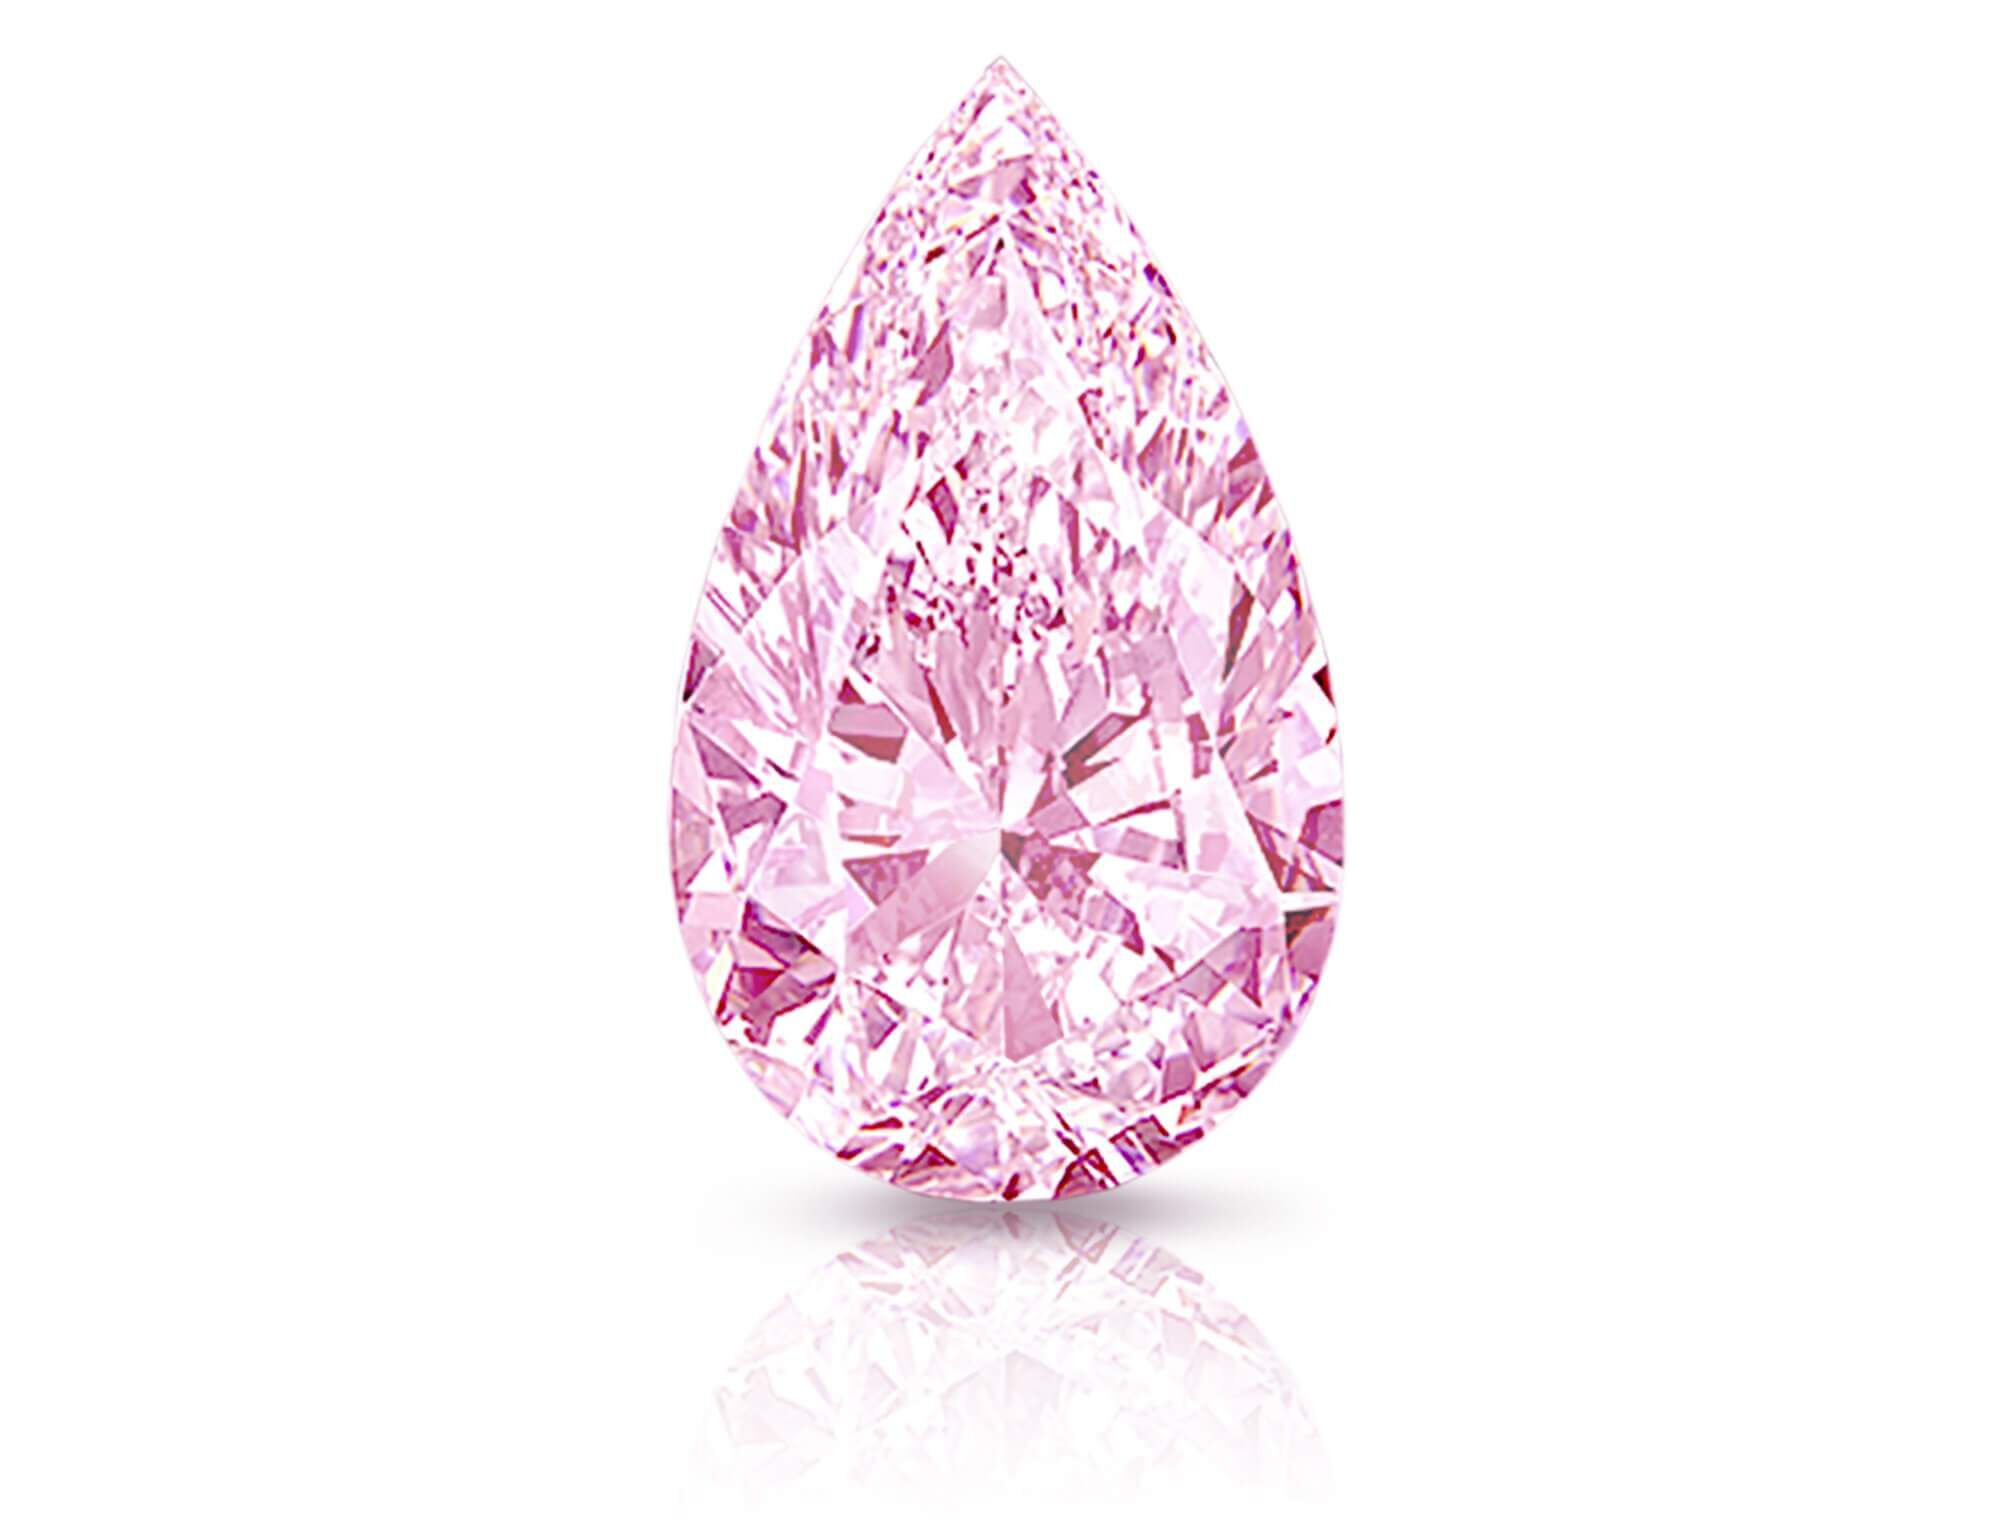 The pear shape pink diamond 'Empress Rose' by Graff